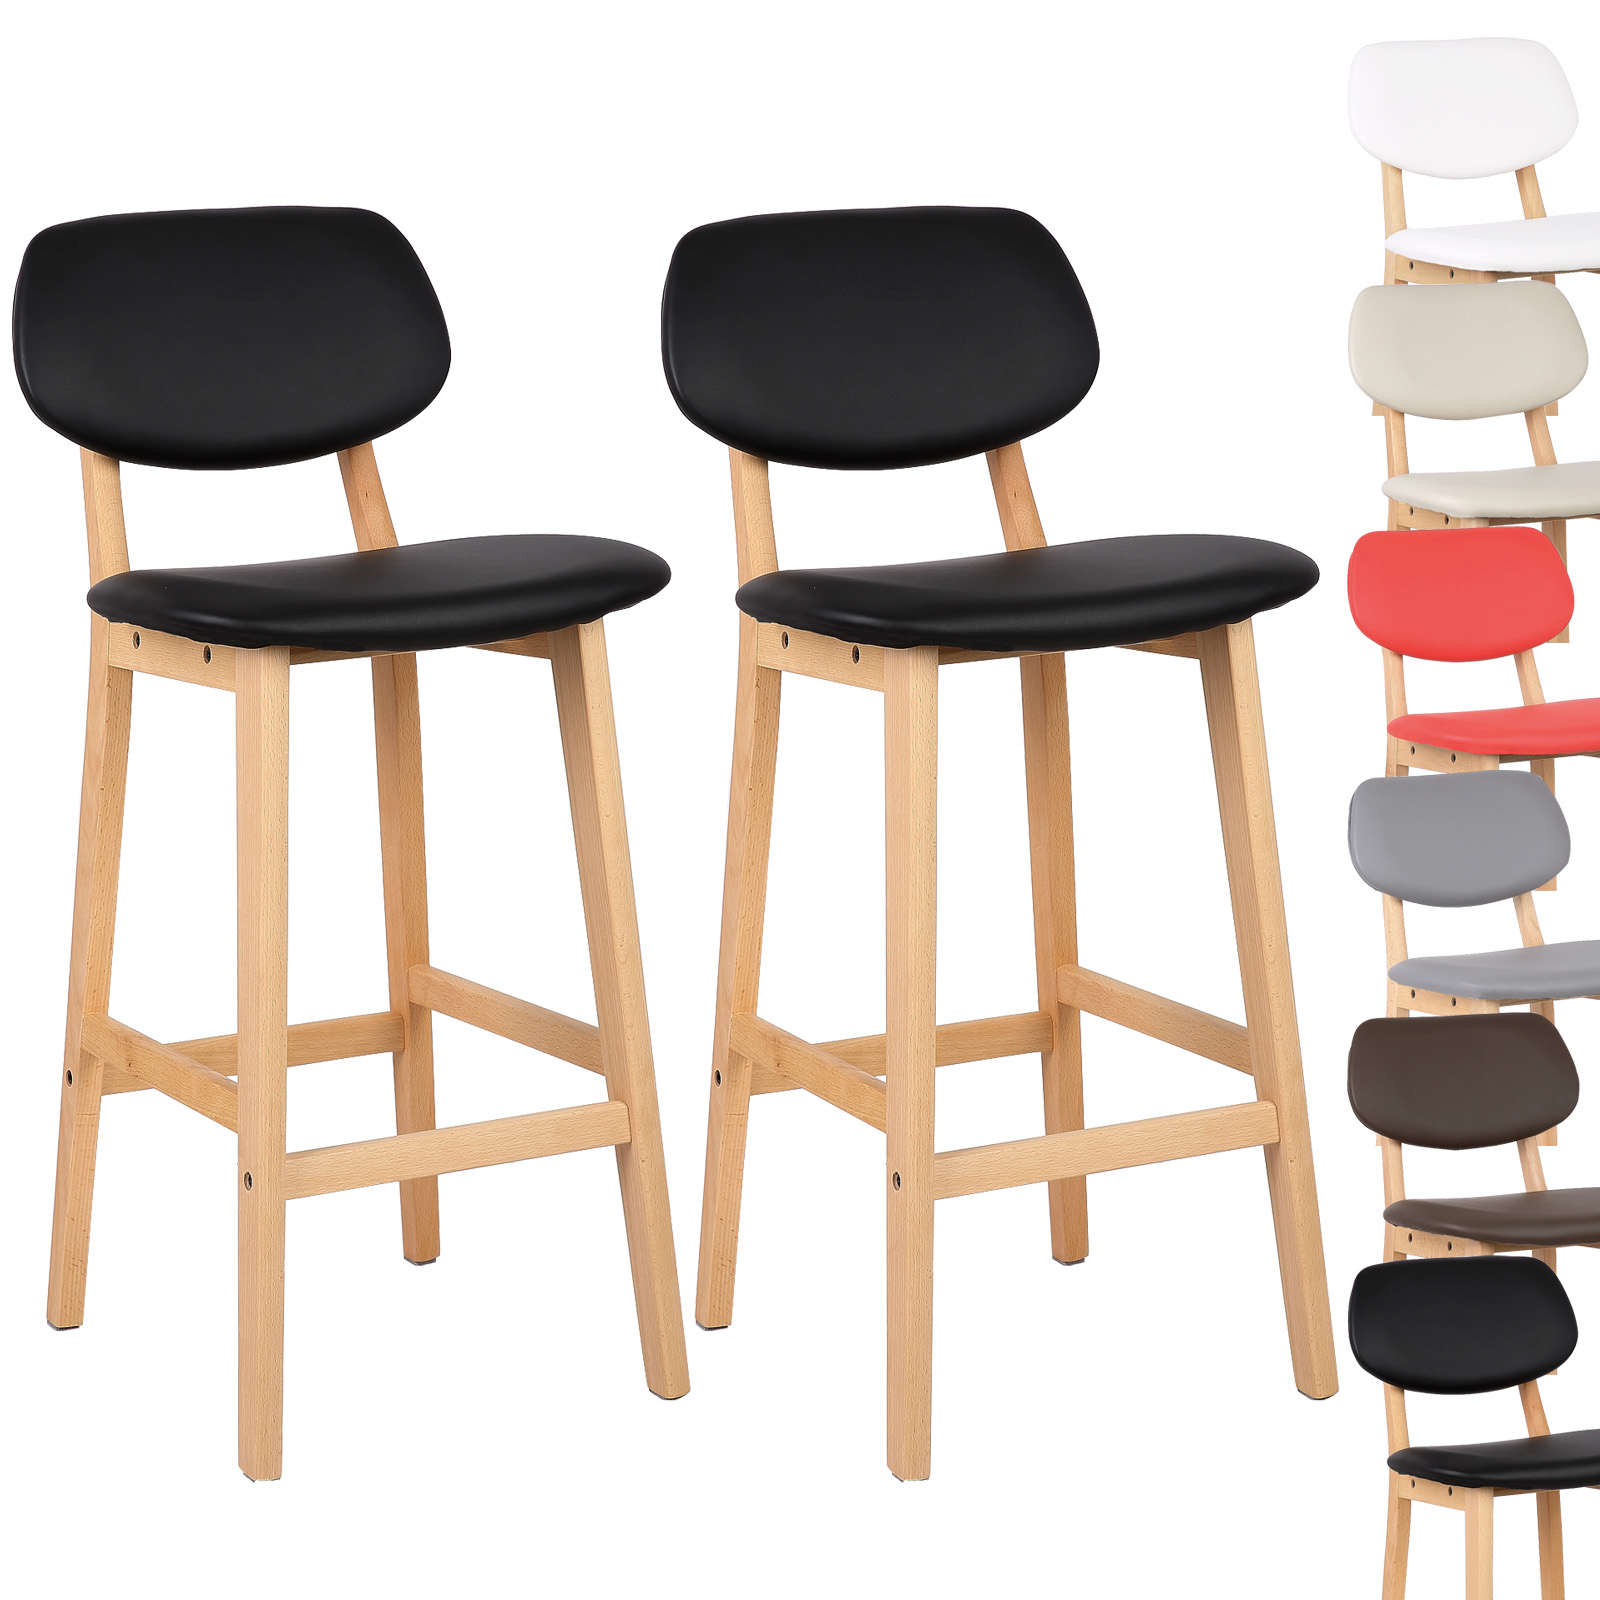 2 x tabouret de bar en cuir artificiel tabourets cuisine for Tabouret bar cuisine